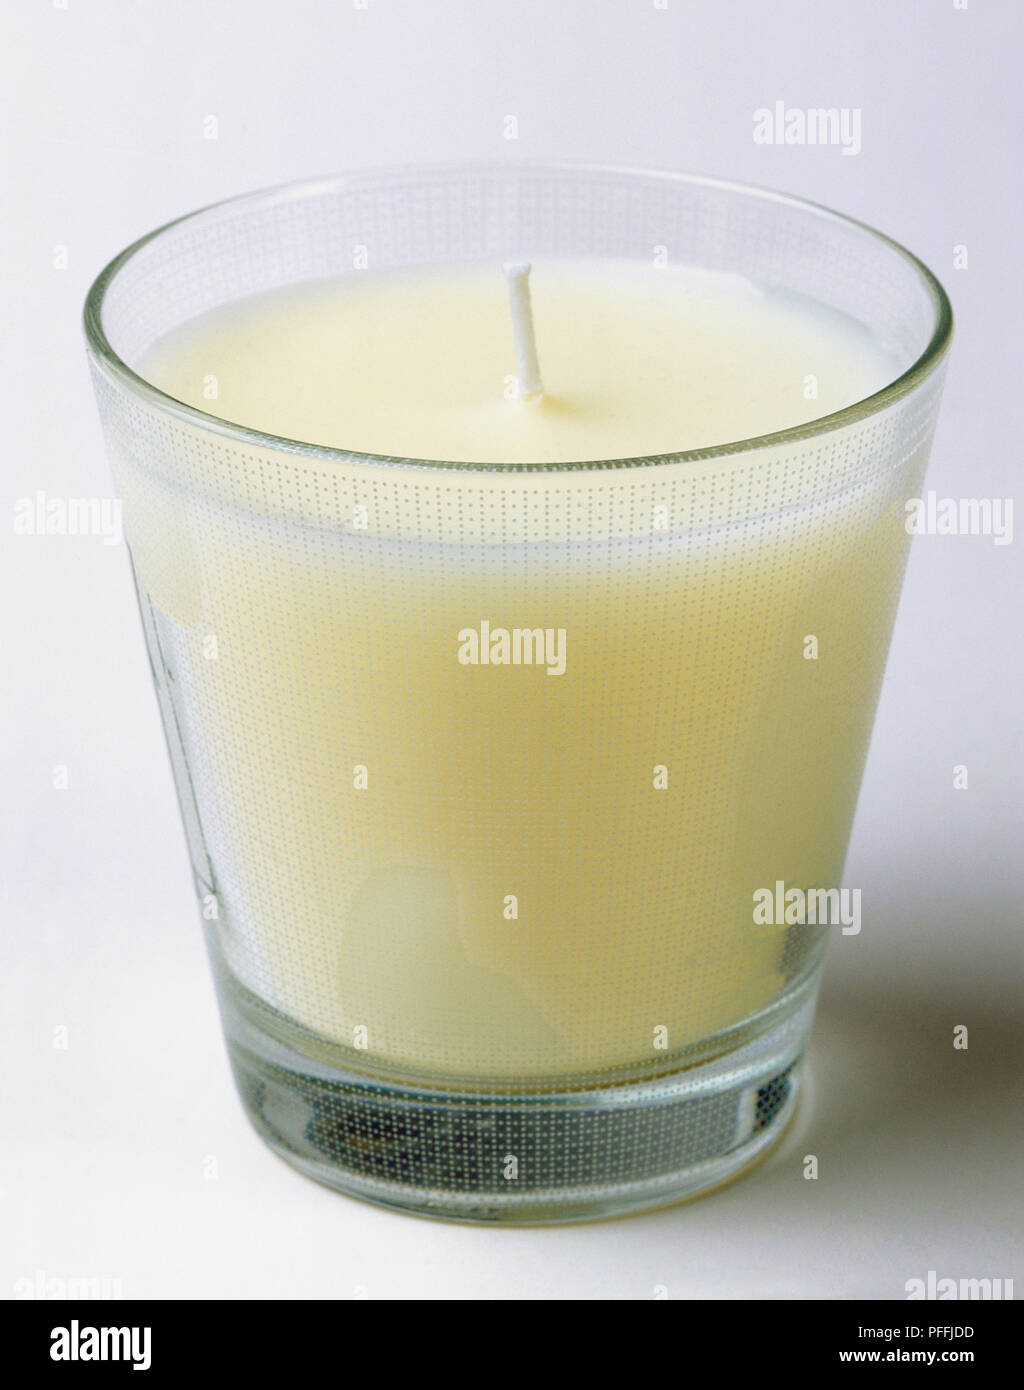 Scented candle in a glass holder, unlit wick, angled front view. - Stock Image